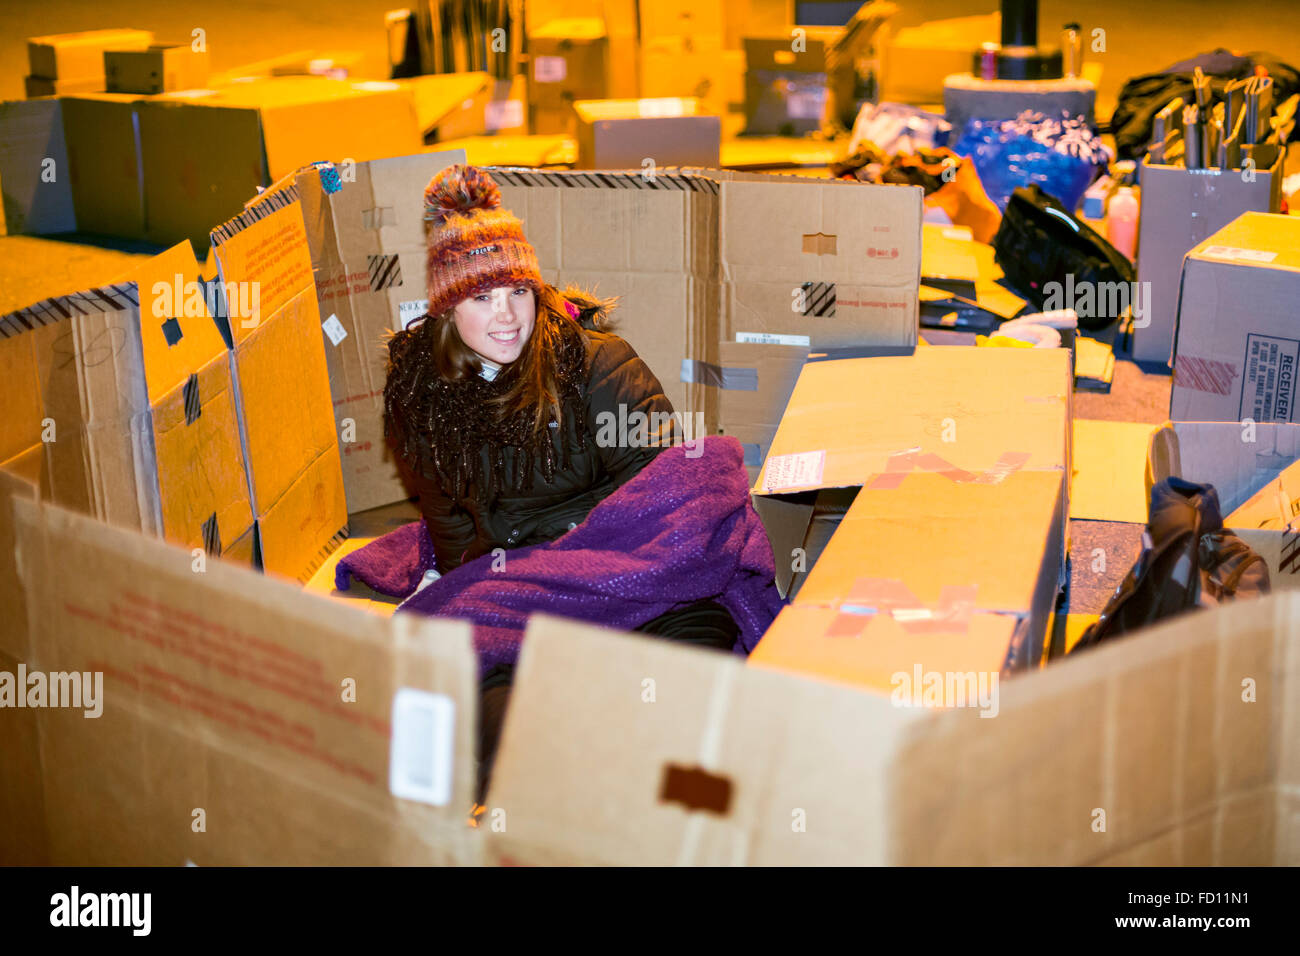 Oakland University students spent a night sleeping in cardboard boxes to draw attention to homelessness. - Stock Image